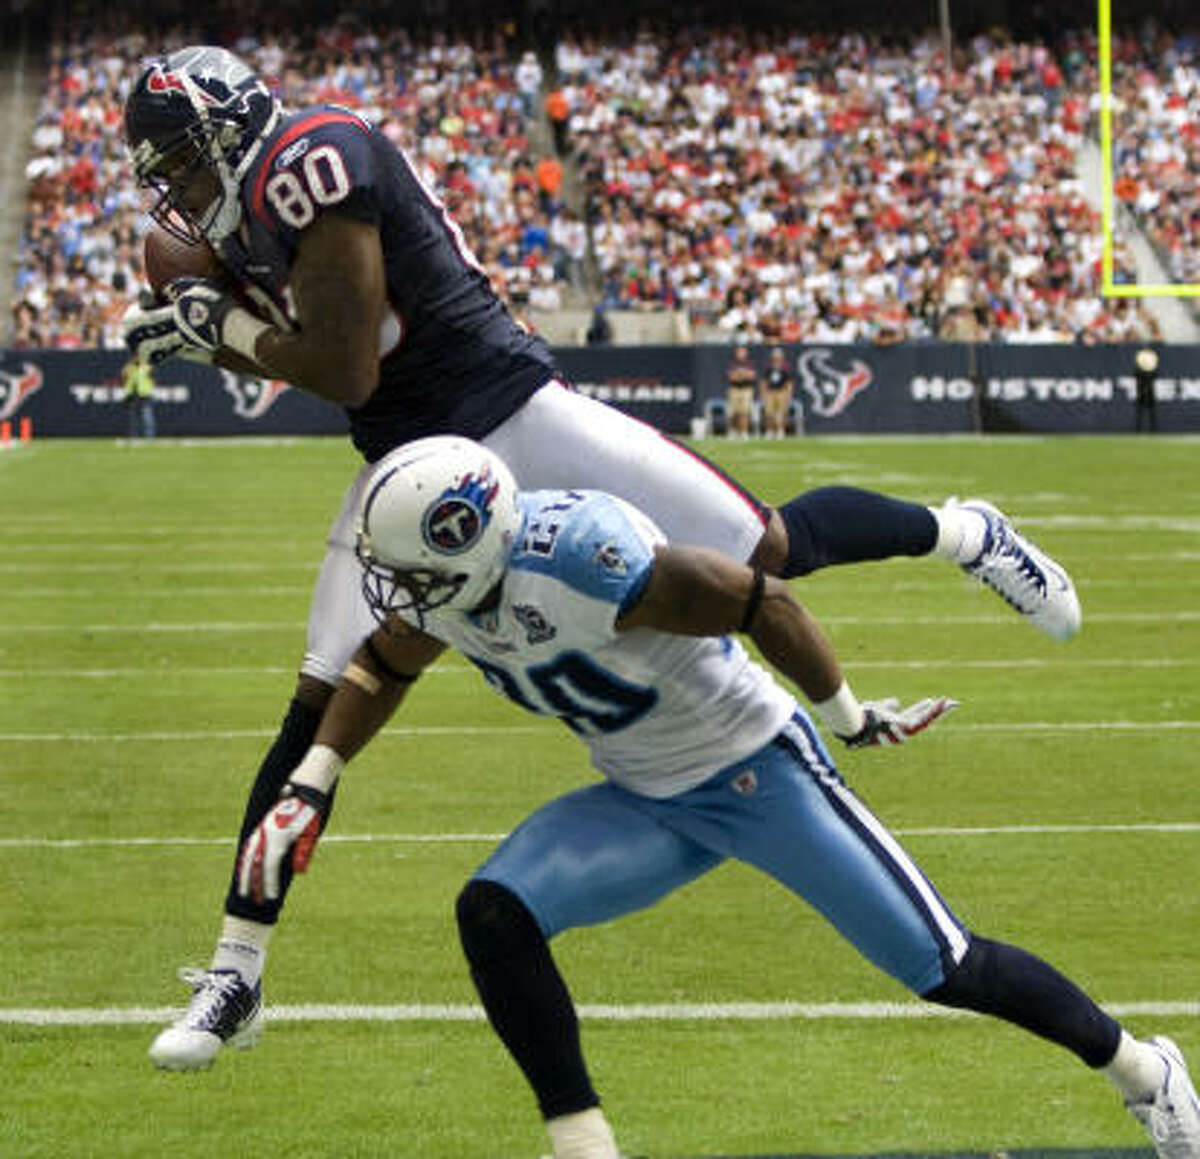 RECEIVER: ANDRE JOHNSON, TEXANS This is Johnson's first selection in six years as a pro. He finished the 2008 season leading the NFL with 1,575 receiving yards and 115 receptions.